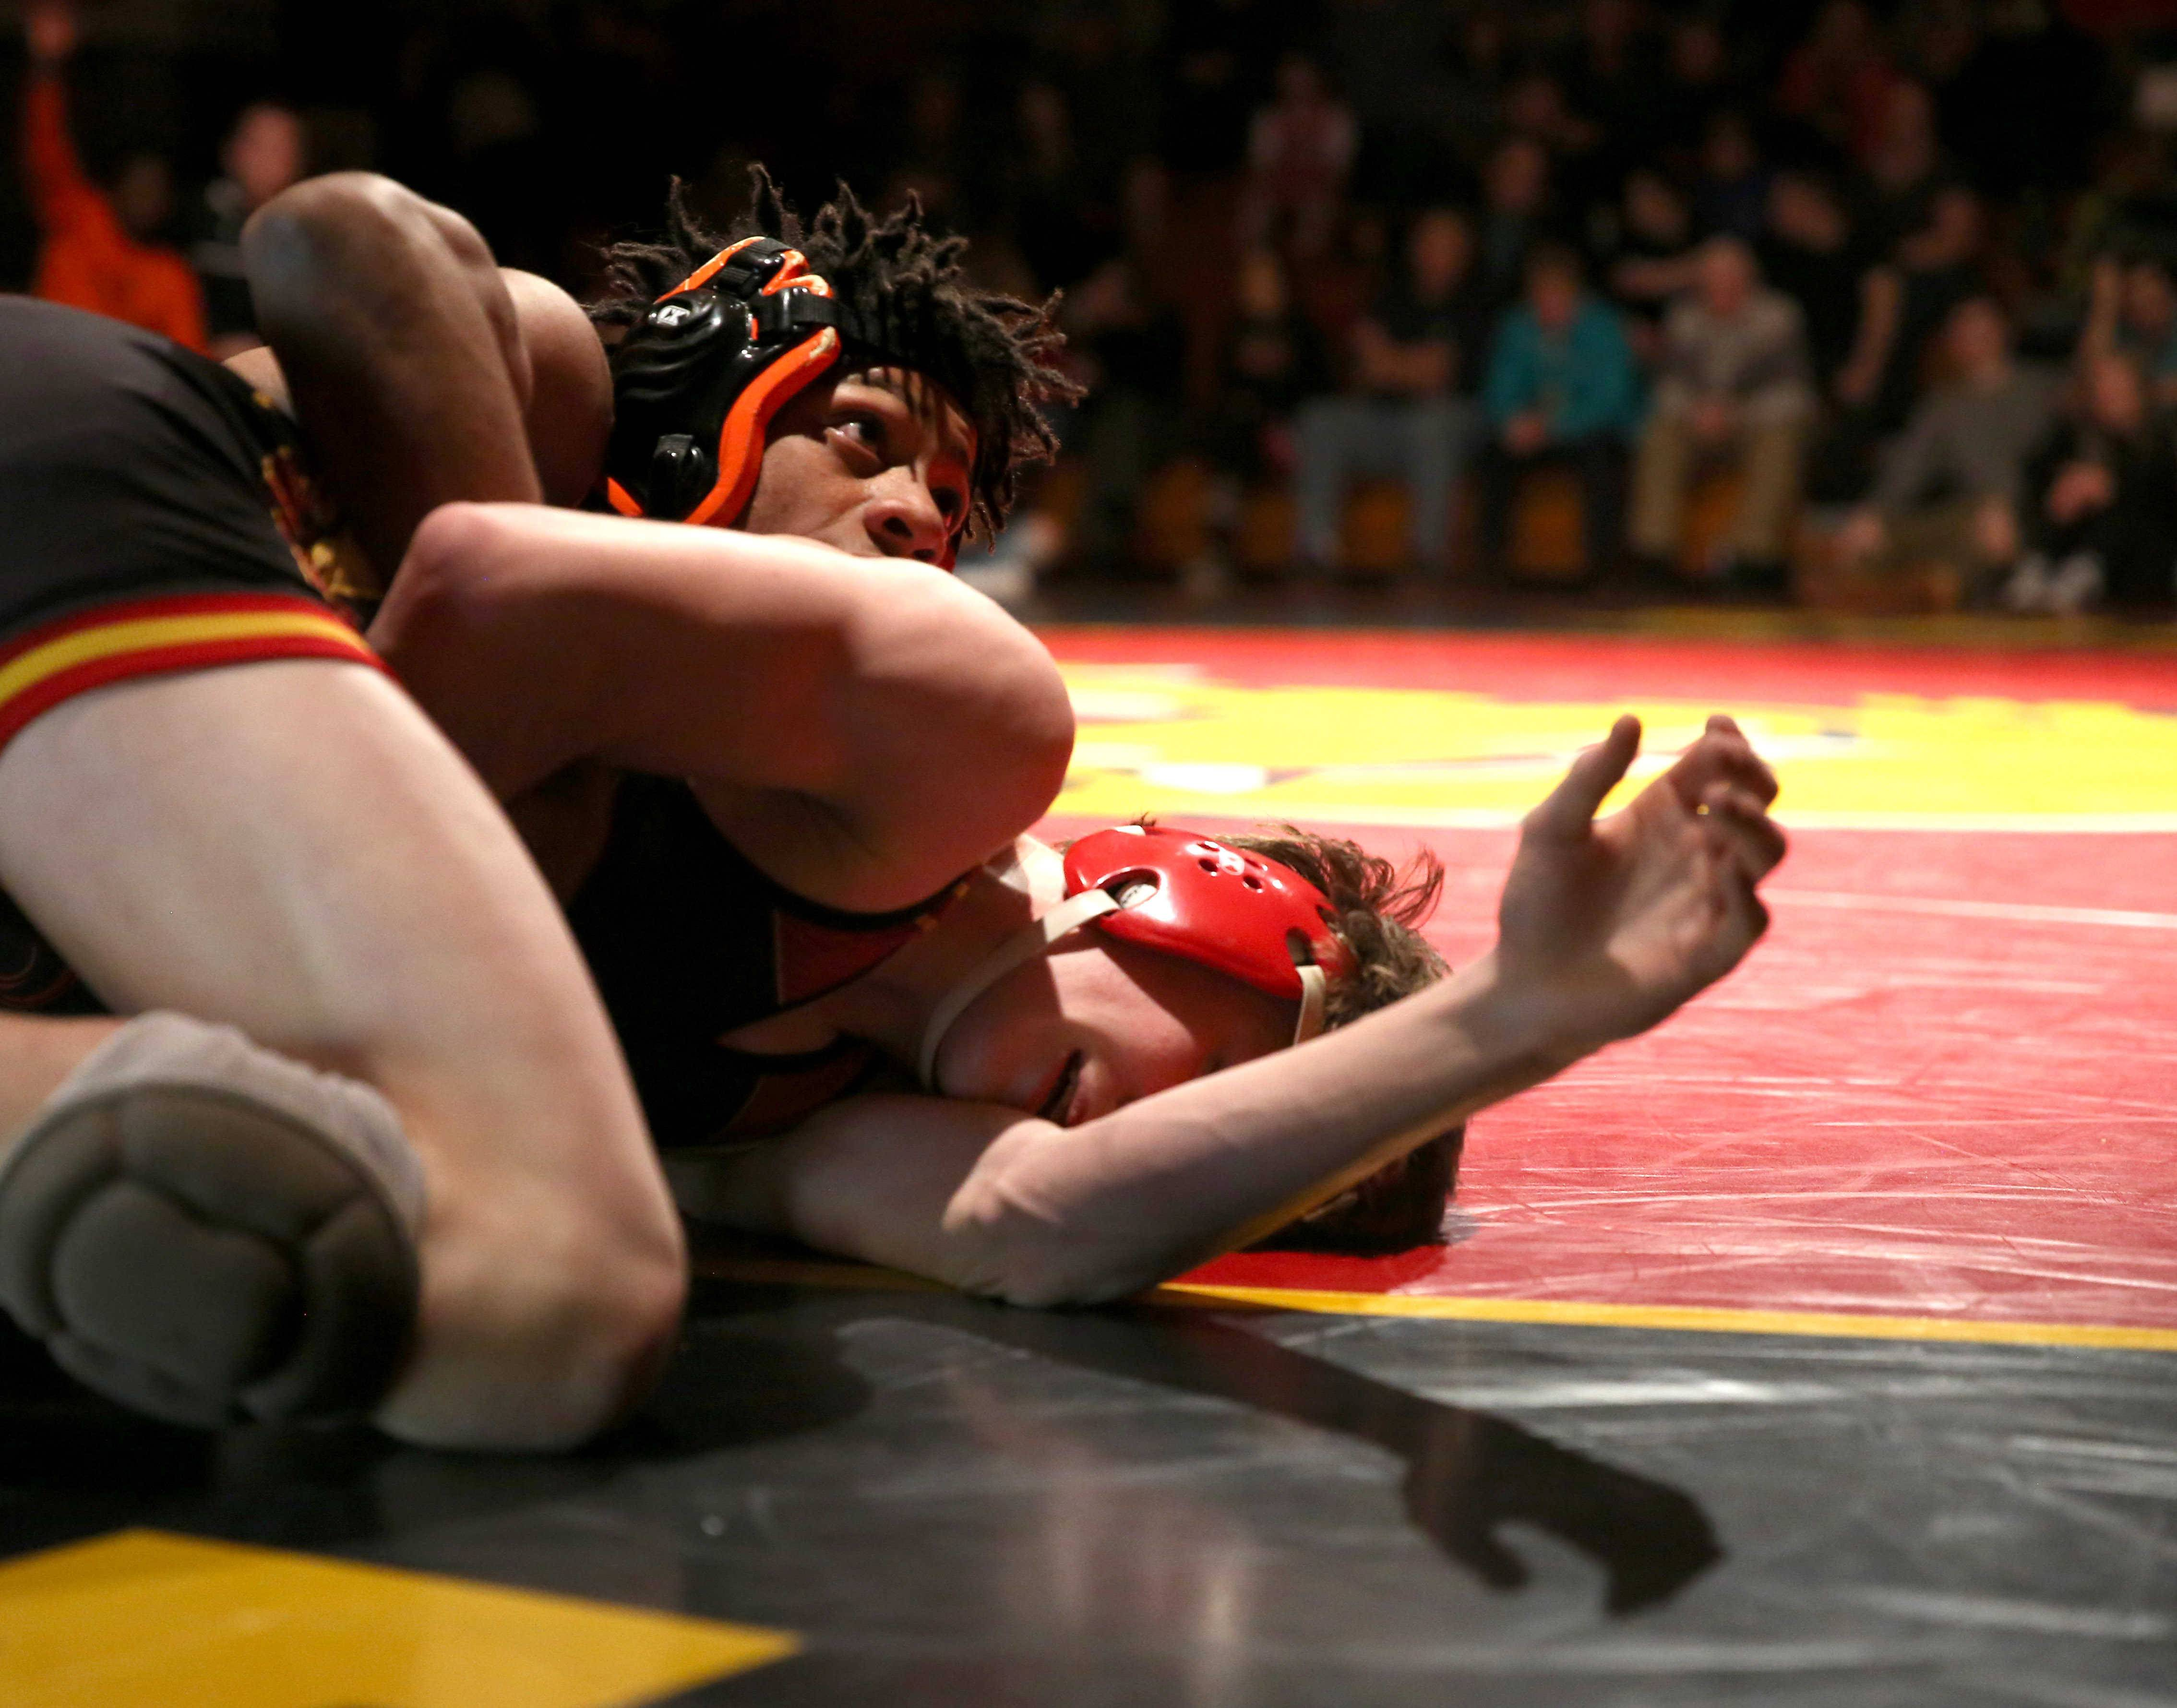 St. Charles East's Louis Gordon, top, controls Batavia's Justin Major at 132 pounds during a varsity wrestling meet at Batavia Tuesday night.